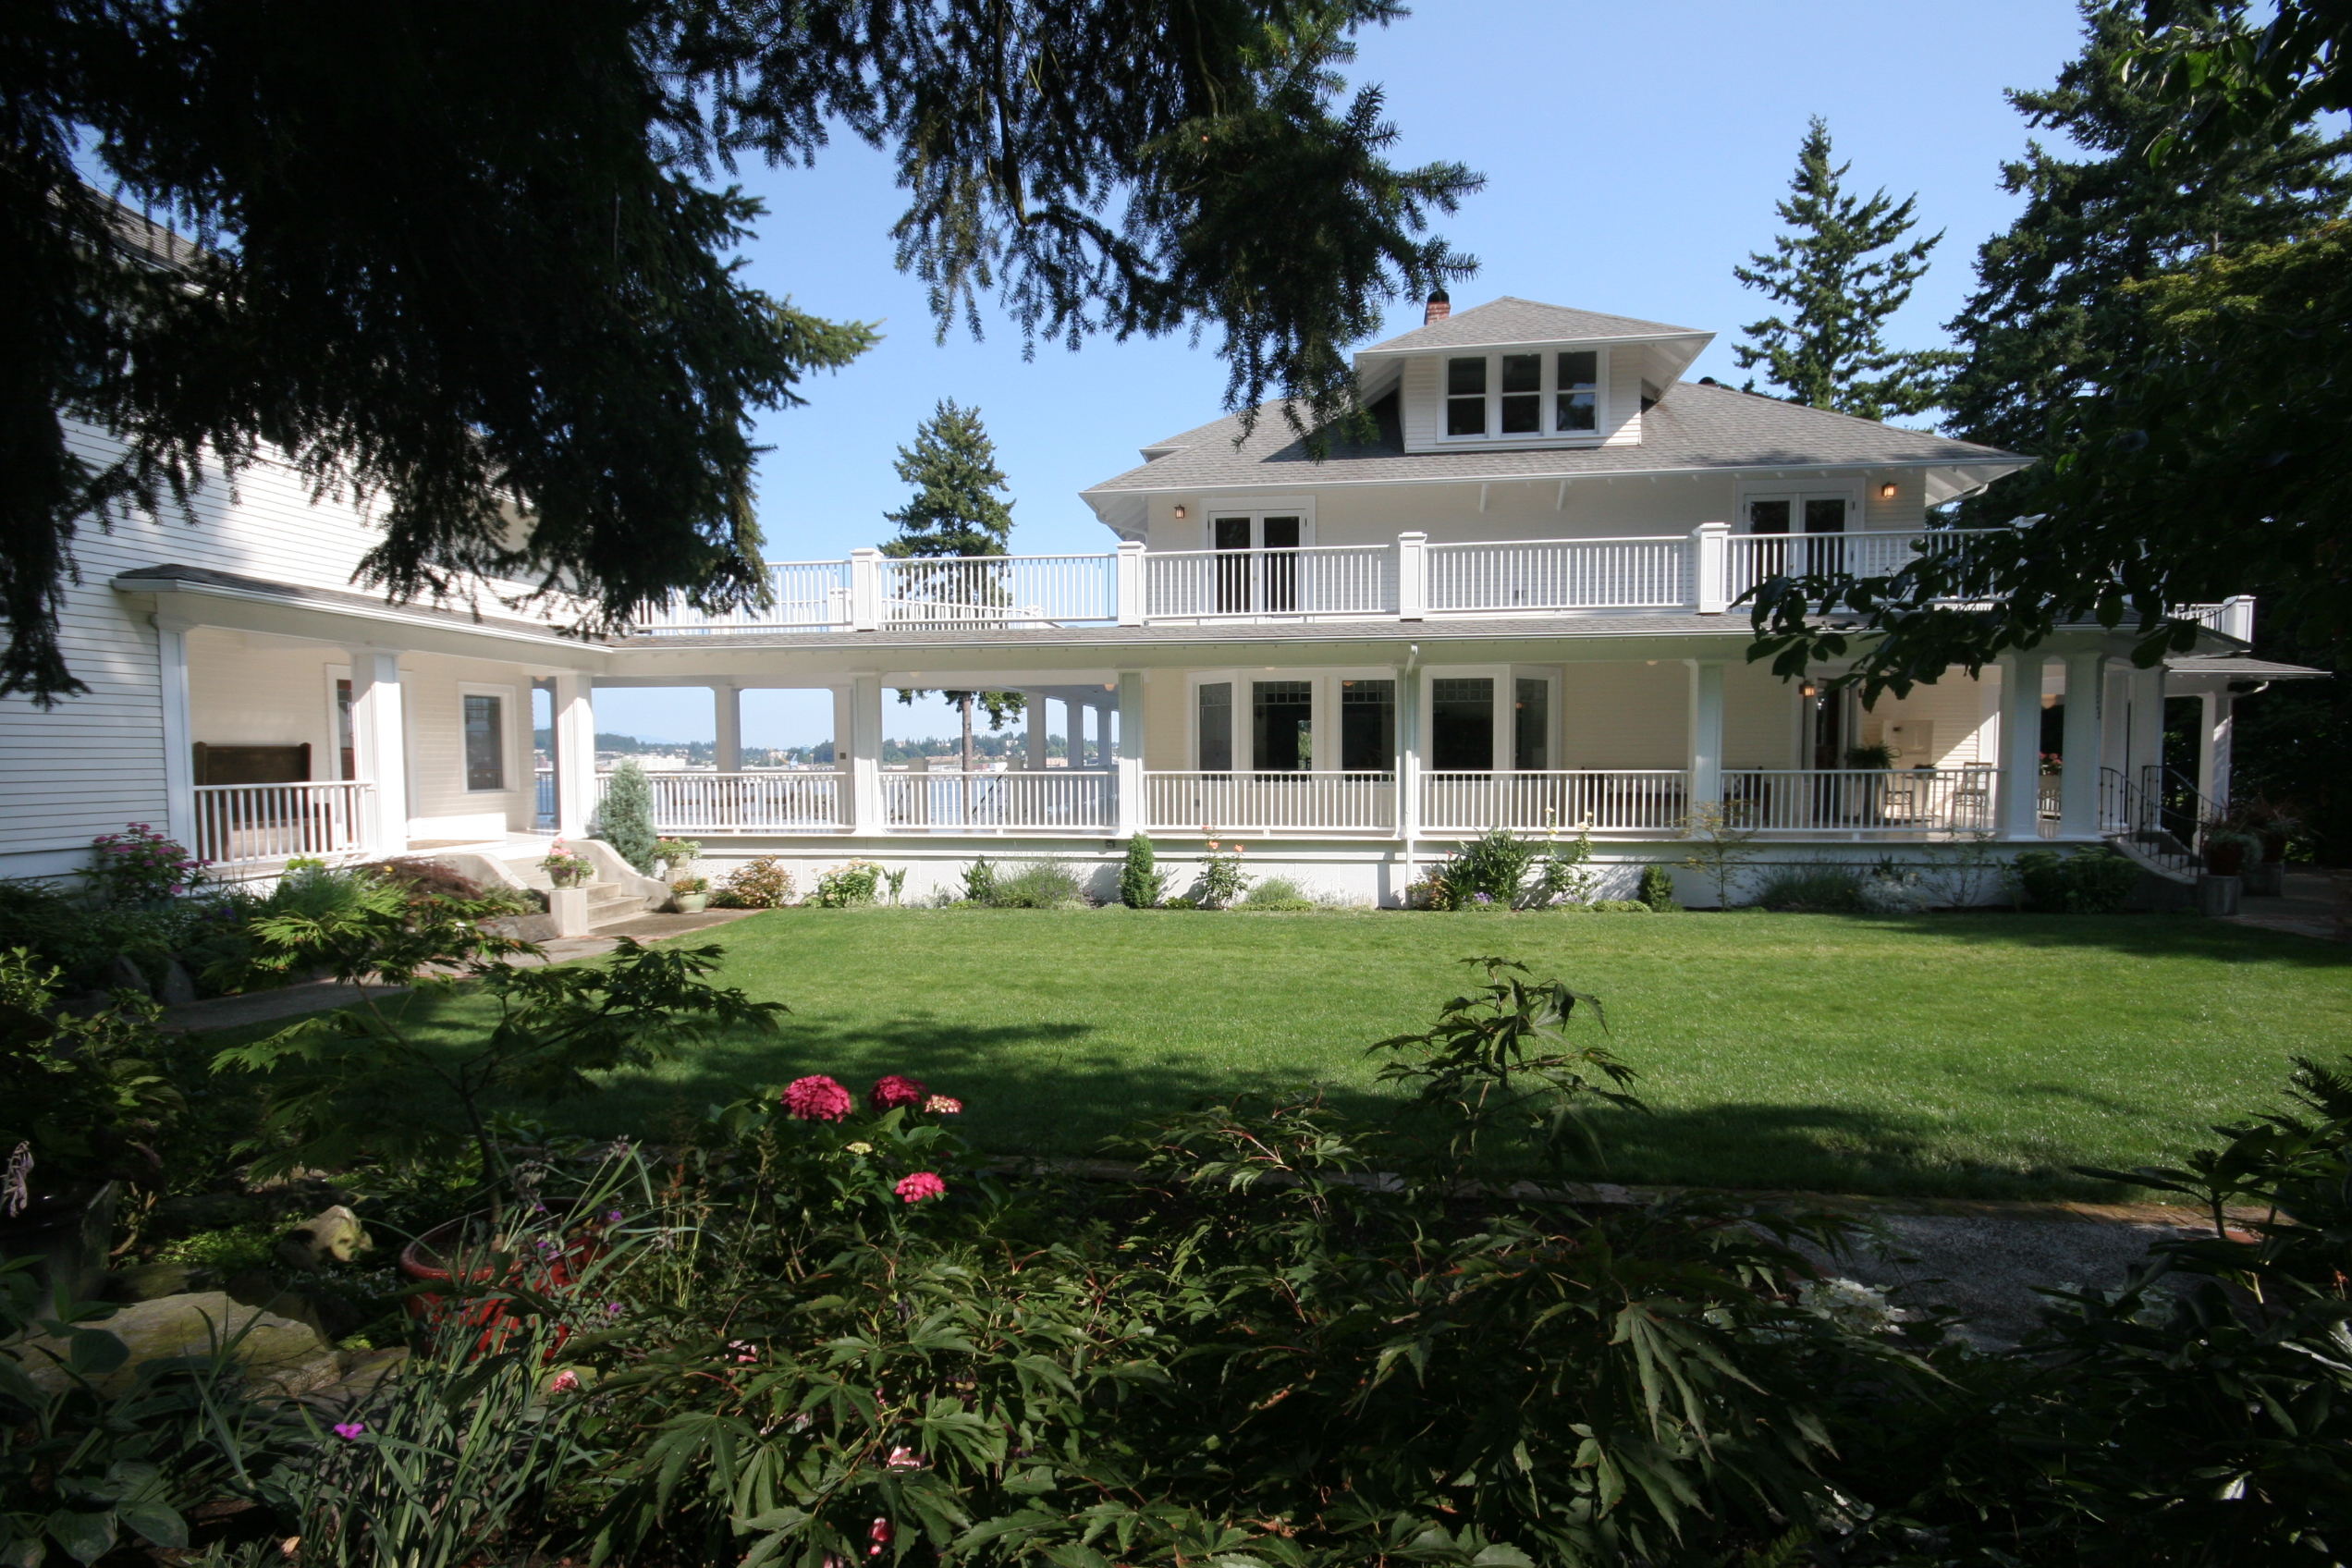 You Have A Choice Of Three Hotels And Four Bed Breakfasts Just In Port Orchard South Kitsap Many Our Breathtaking